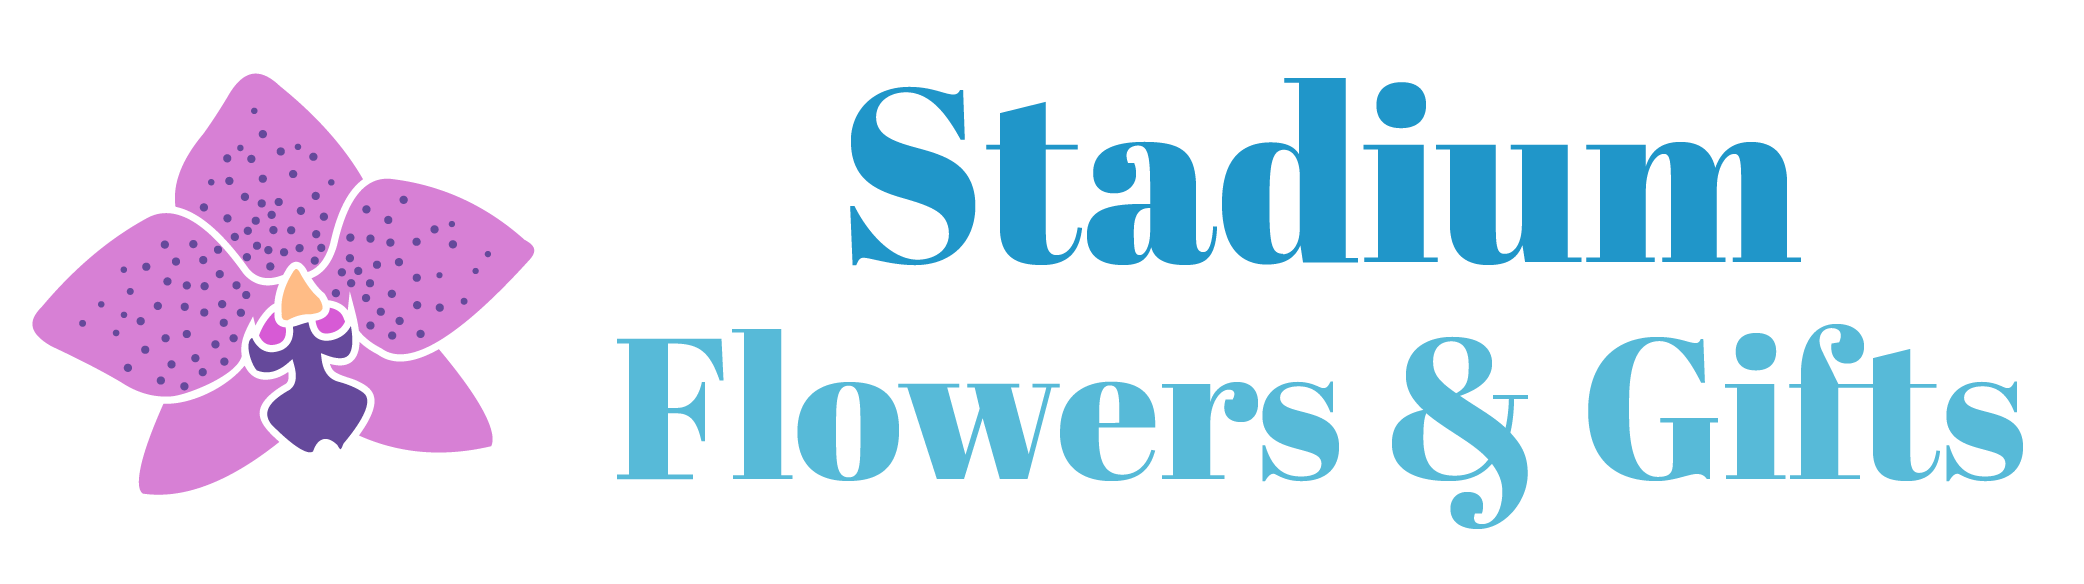 Stadium Flowers & Gifts - Flower Delivery in Portland, OR